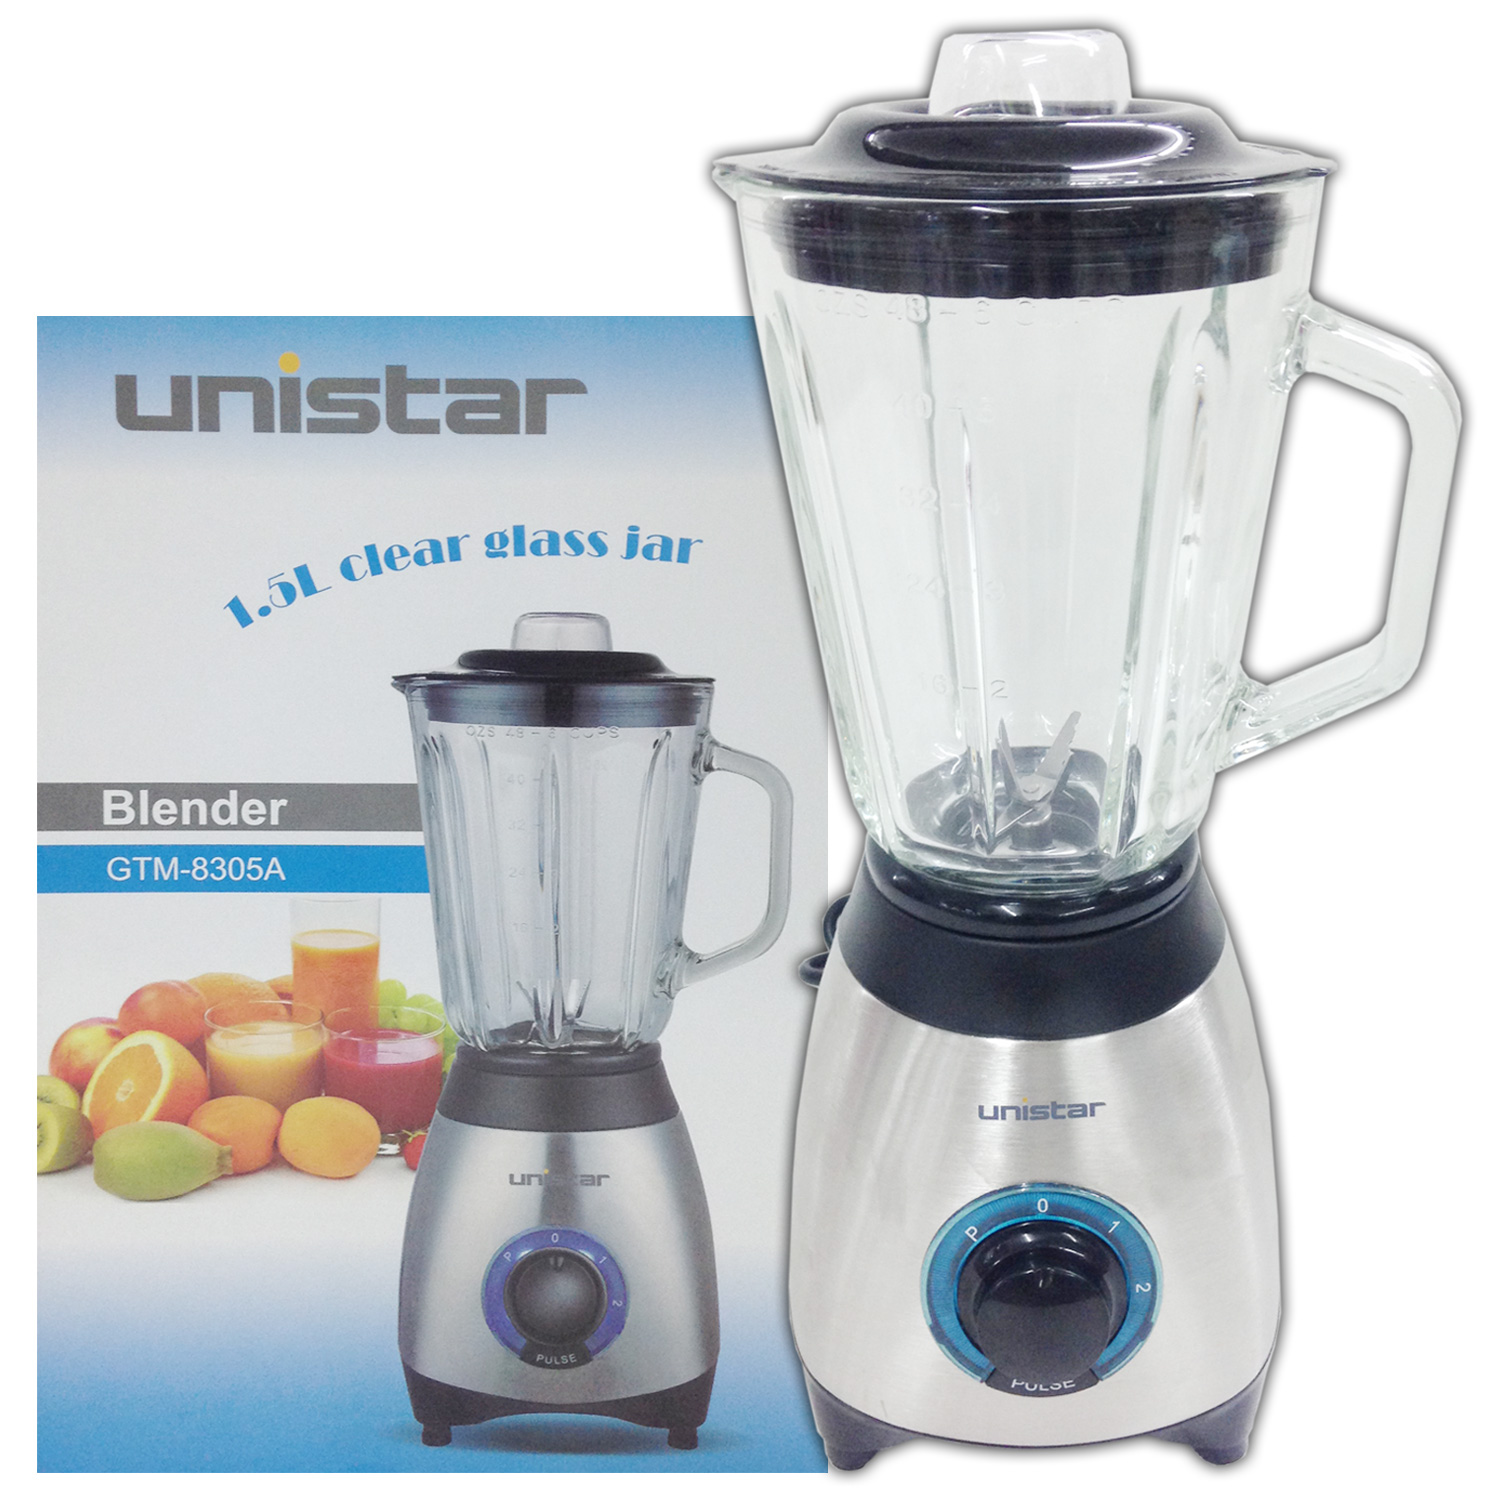 Unistar 2 in 1 Blender 1.5Ltrs (GTM-8322)